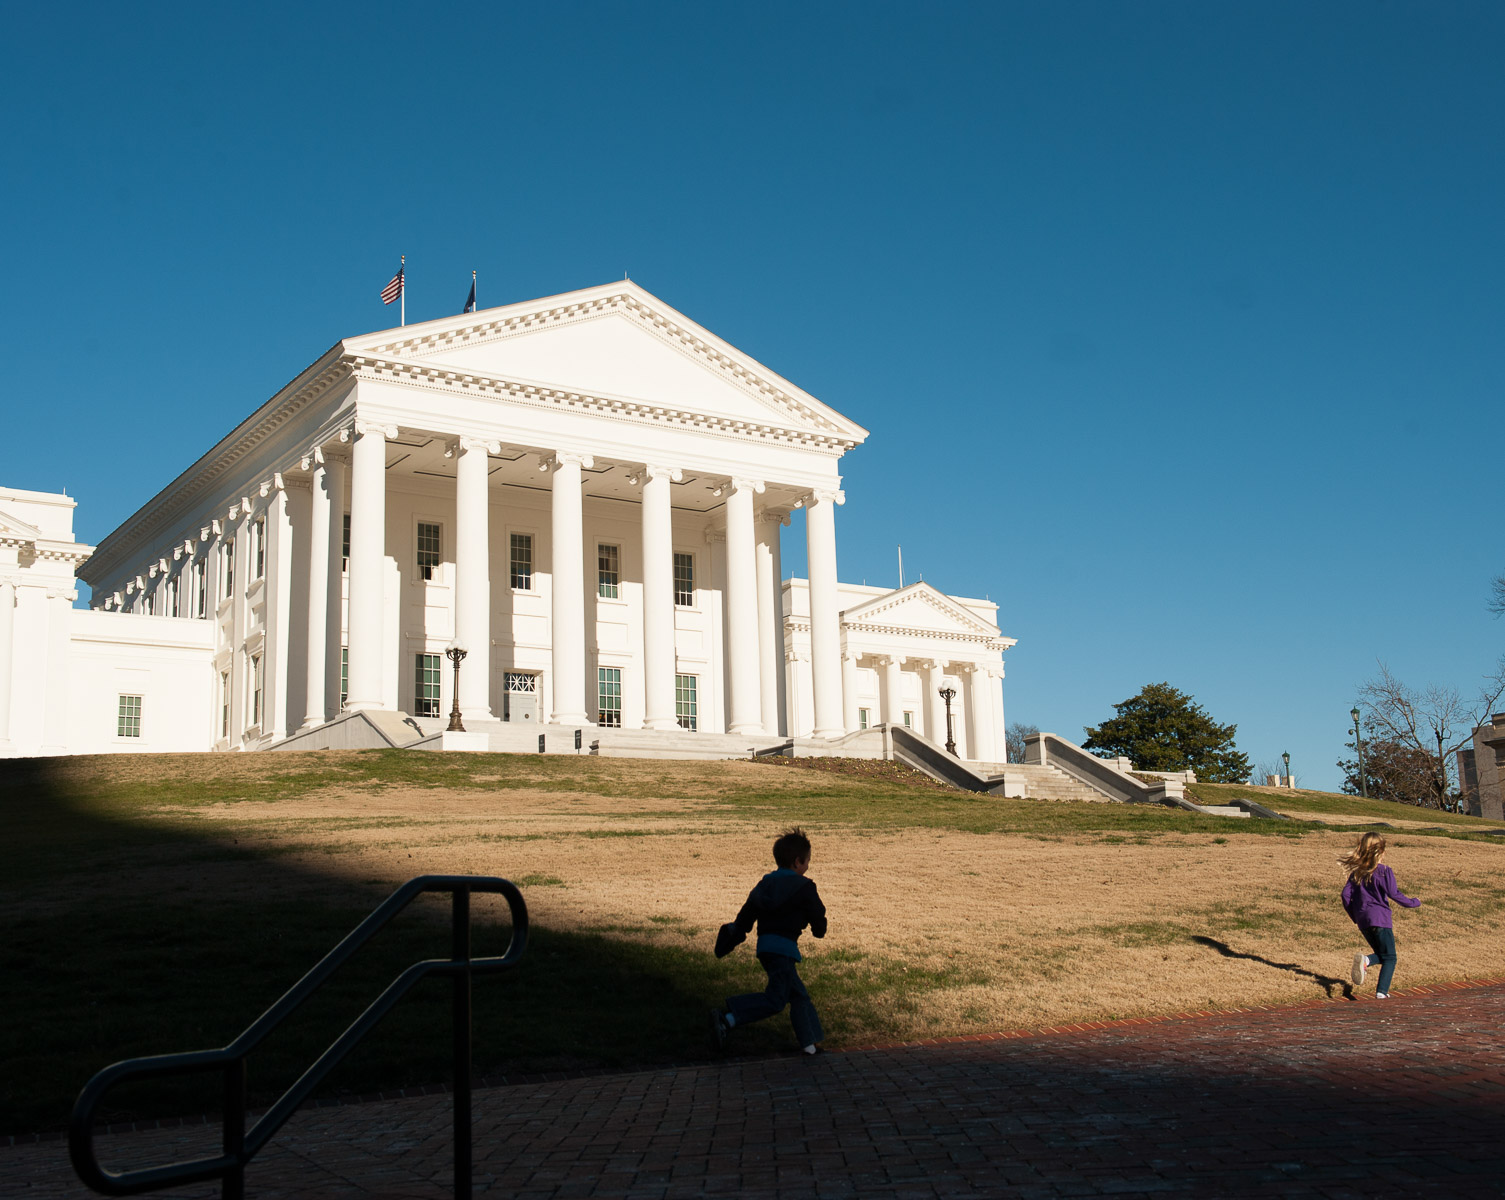 The State Capitol Building in Richmond, Virginia. January 19, 2012. PHOTOGRAPH BY VANESSA VICK FOR THE NEW YORK TIMES